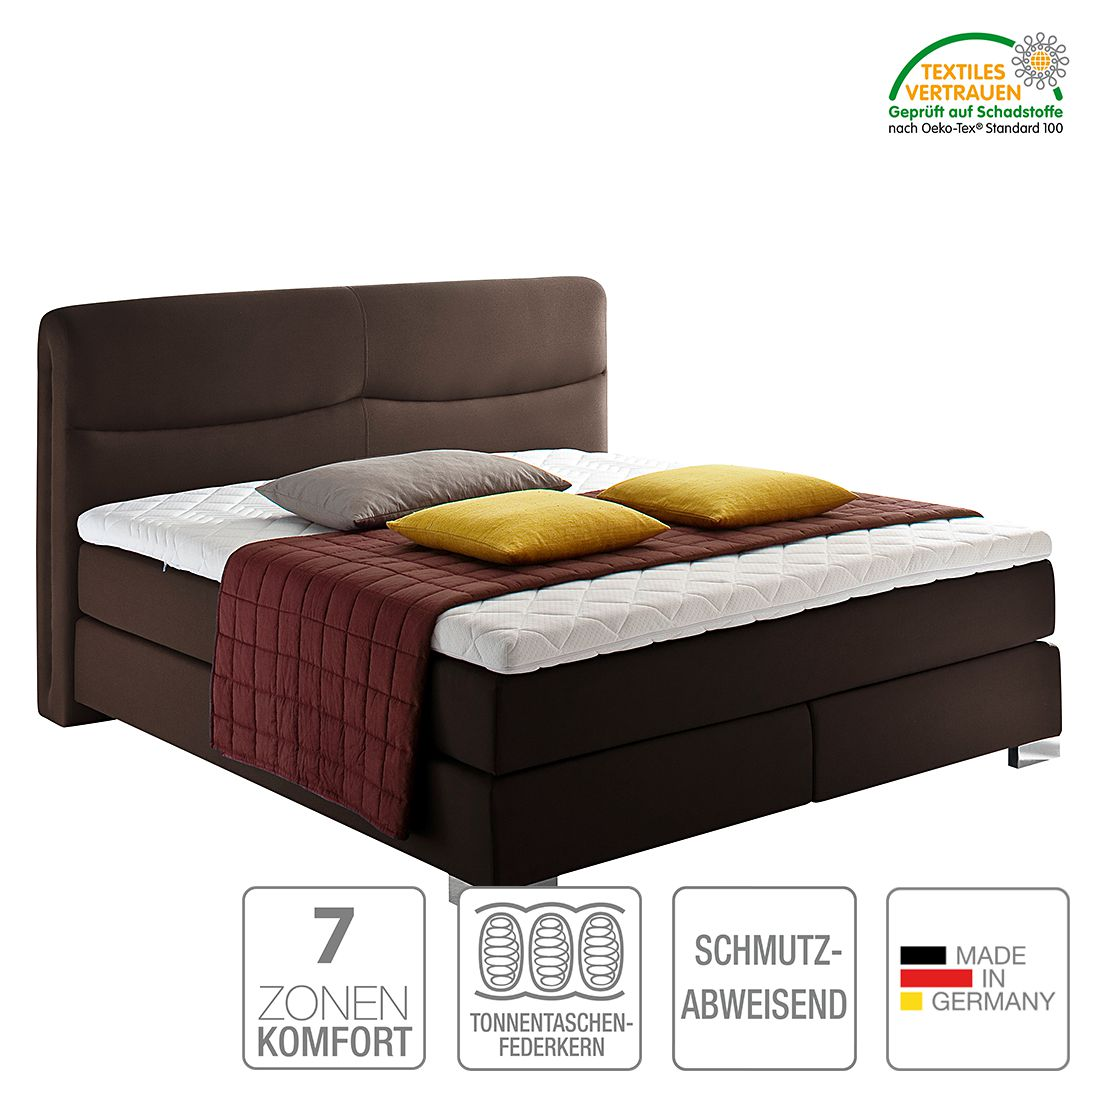 boxspringbett scala webstoff h2 bis 80 kg h3 ab 80 kg kaltschaumtopper. Black Bedroom Furniture Sets. Home Design Ideas